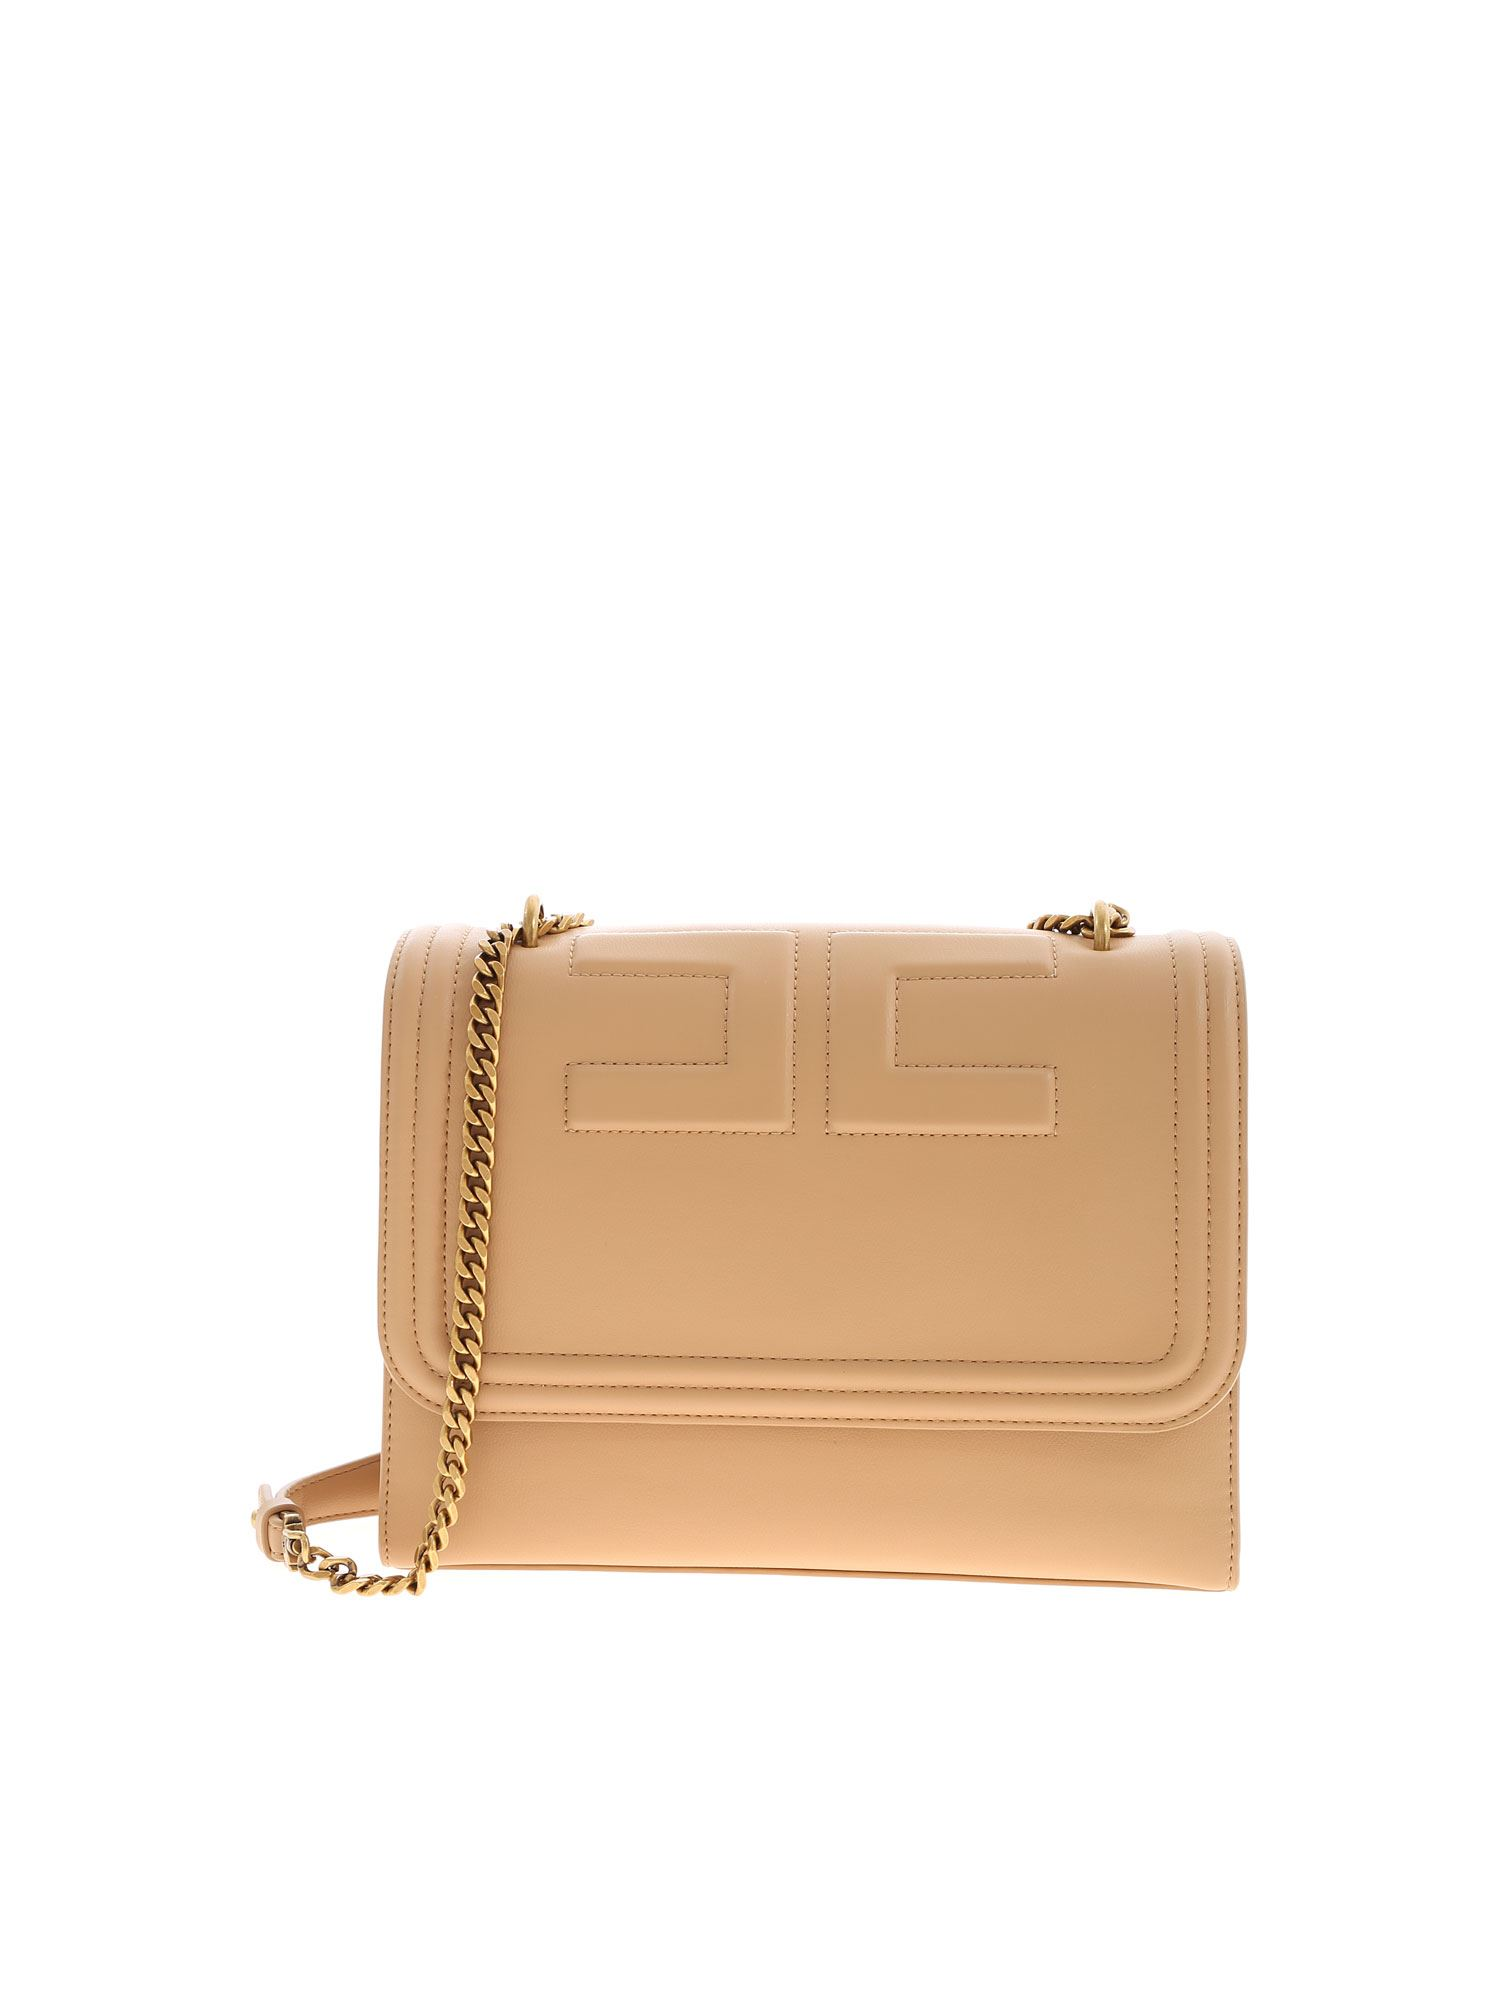 Elisabetta Franchi LOGO SHOULDER BAG IN NUDE COLOR